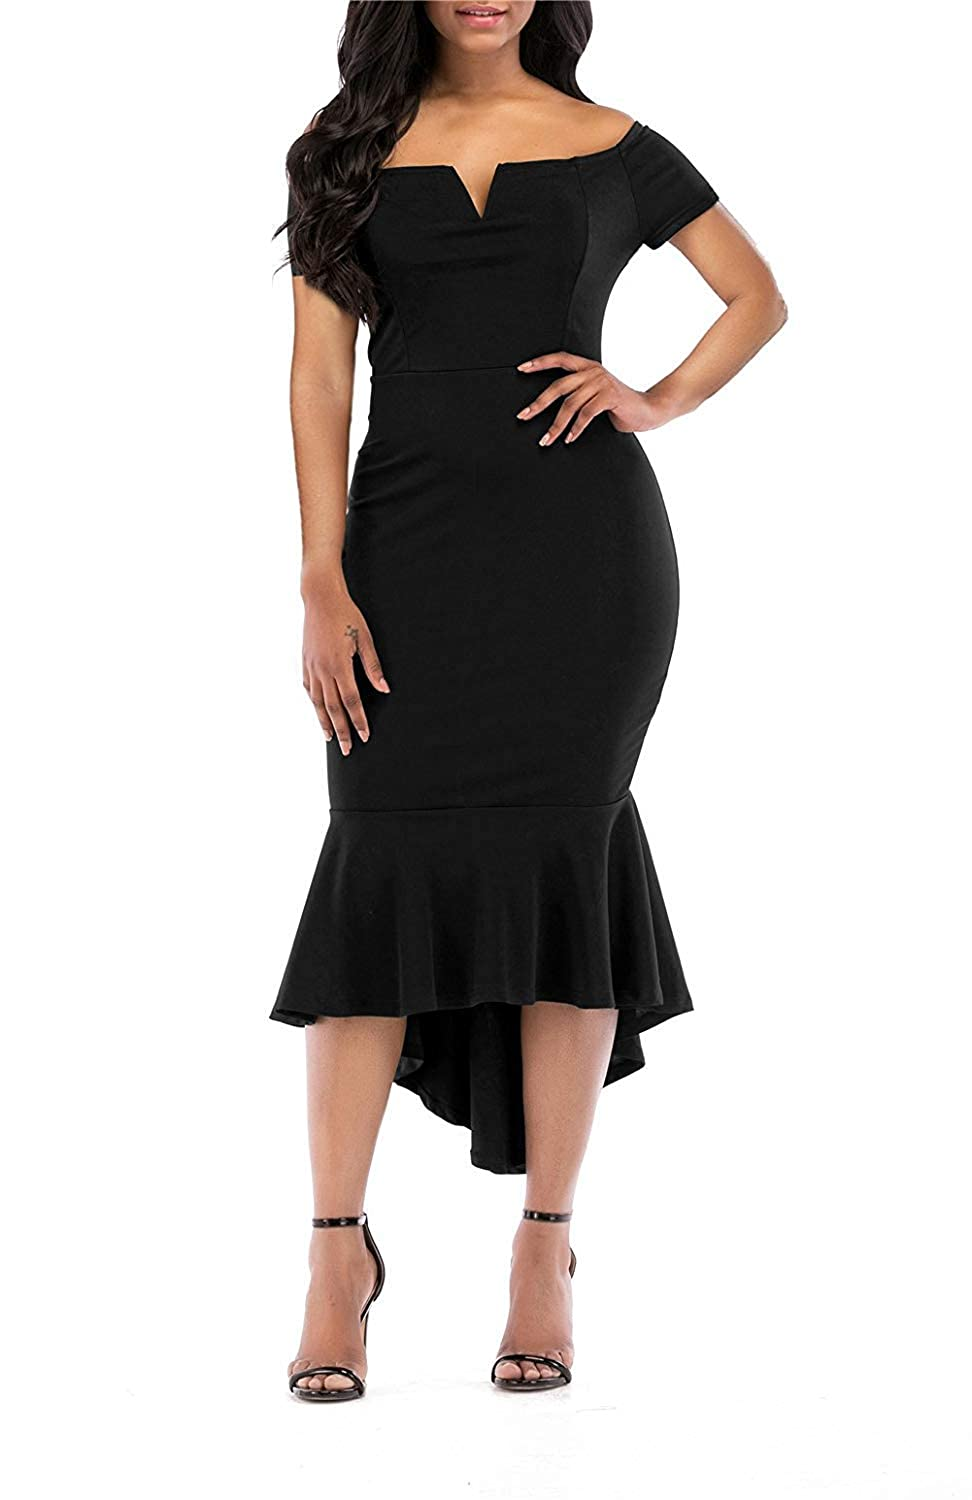 TALLA M. KISSMODA Vestidos Midi para Mujer Off The Shoulder High Low Bodycon Vestido de Noche de Sirena S-negro